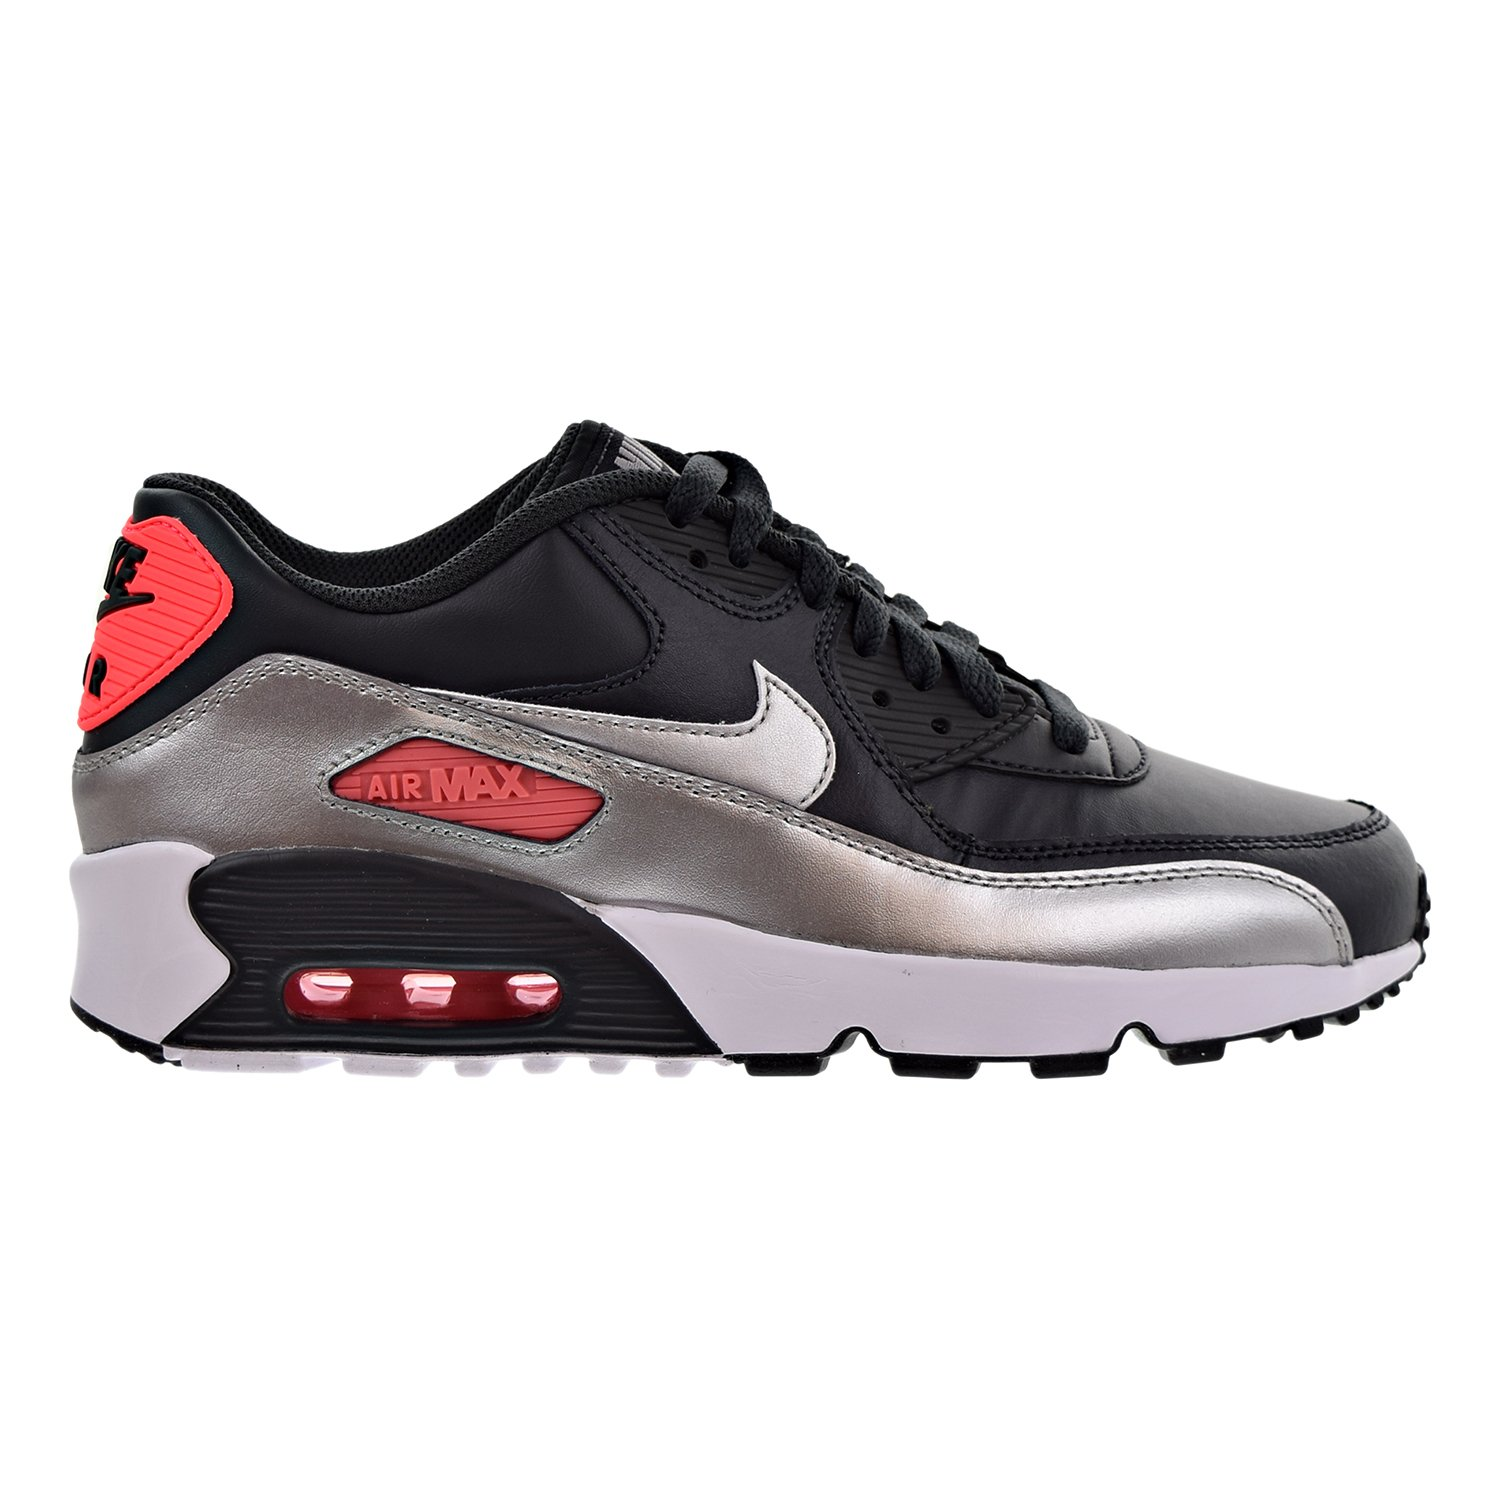 88bd91cfabe5b Mua sản phẩm NIKE Air Max 90 LTR Big Kids (GS) Shoes Anthracite ...